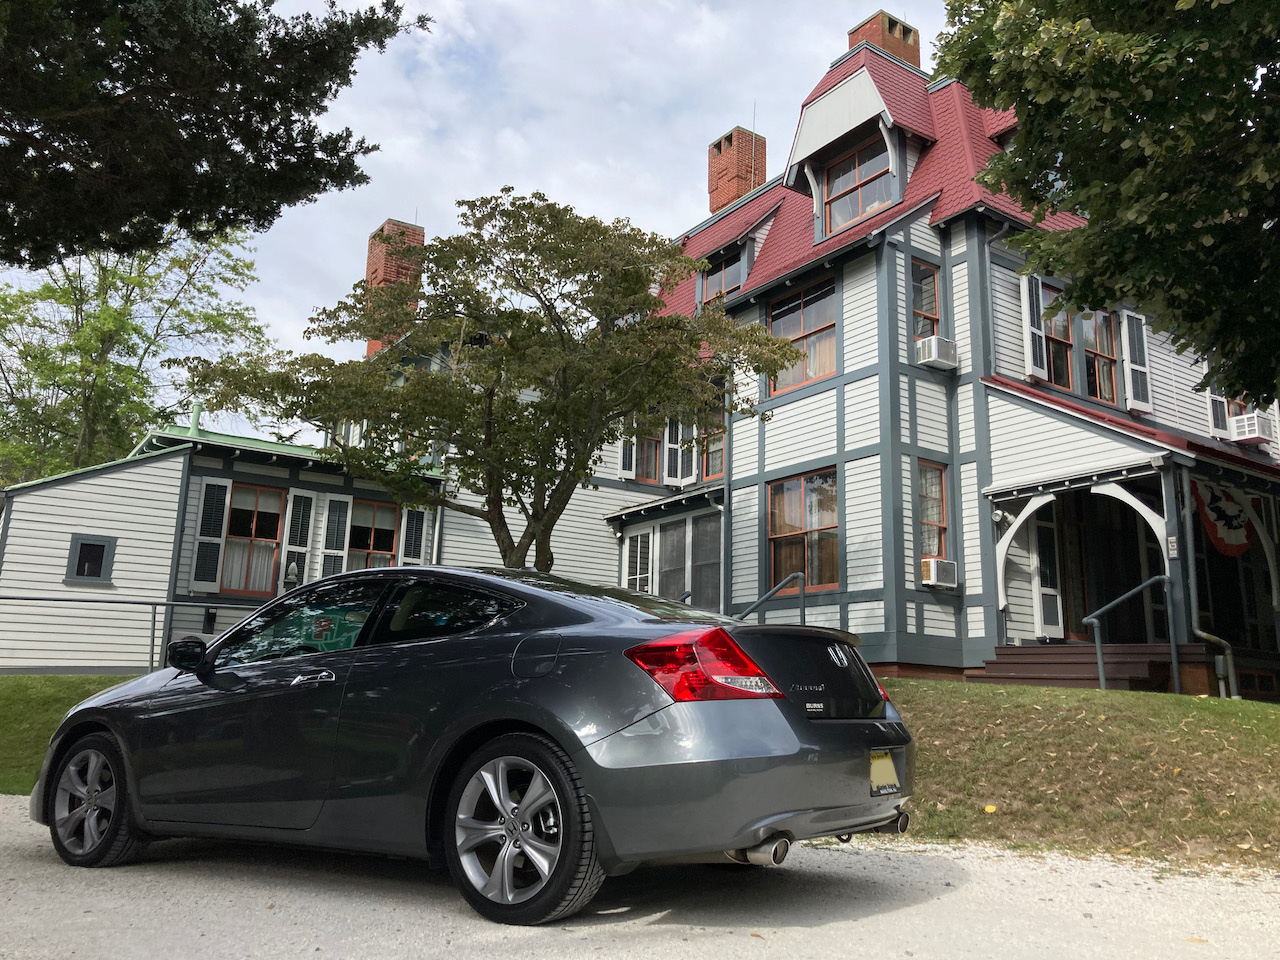 2012 Honda Accord in front of Emlen Physick Estate